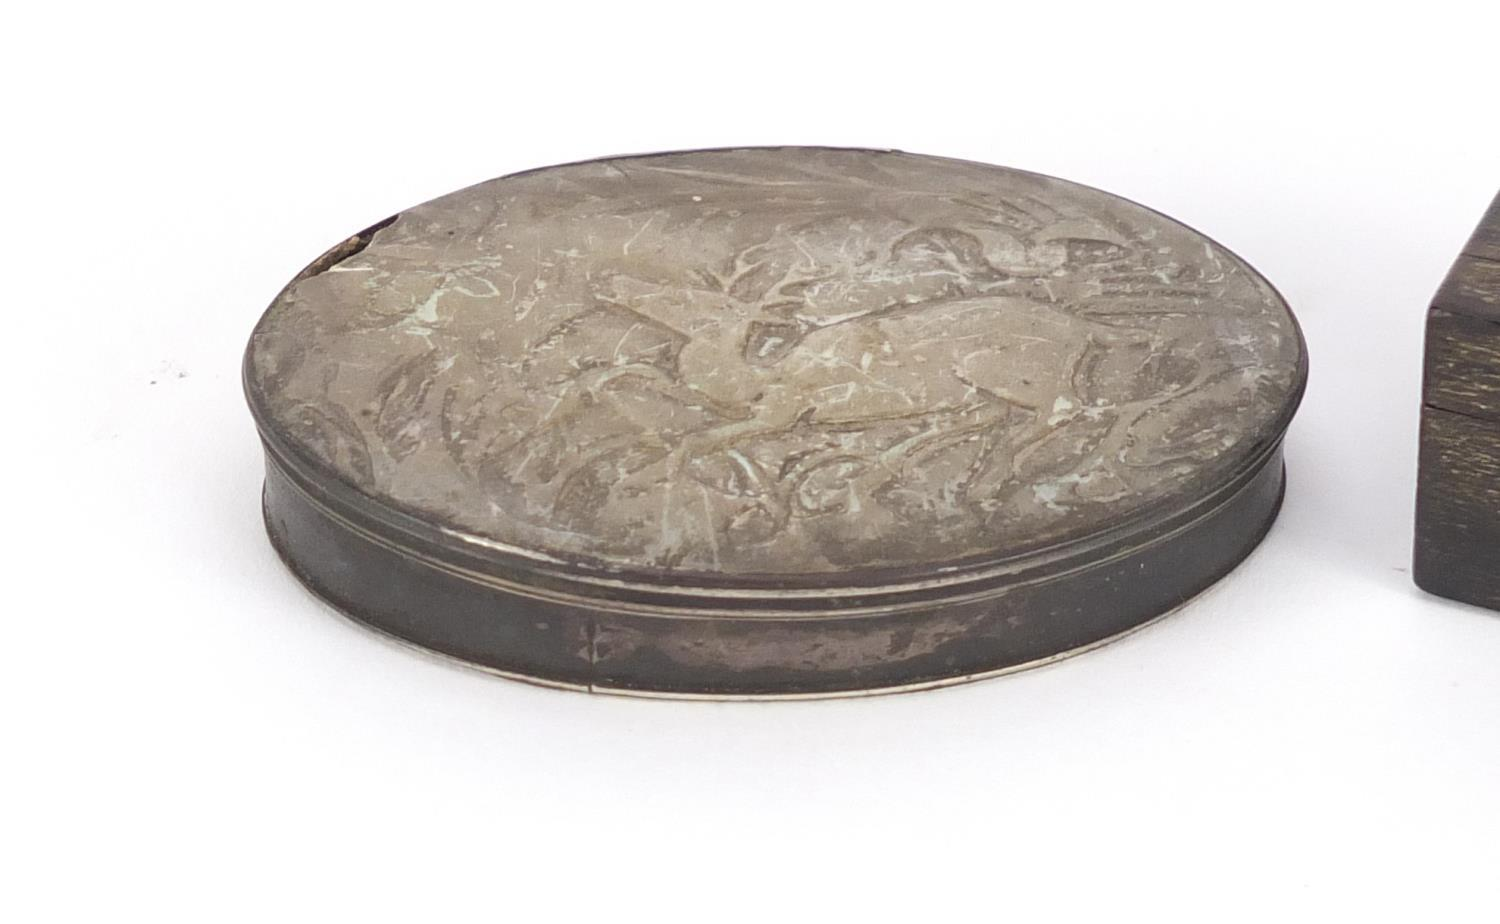 Lot 49 - Two 18th century snuff boxes comprising a silver, mother of pearl and tortoiseshell example and